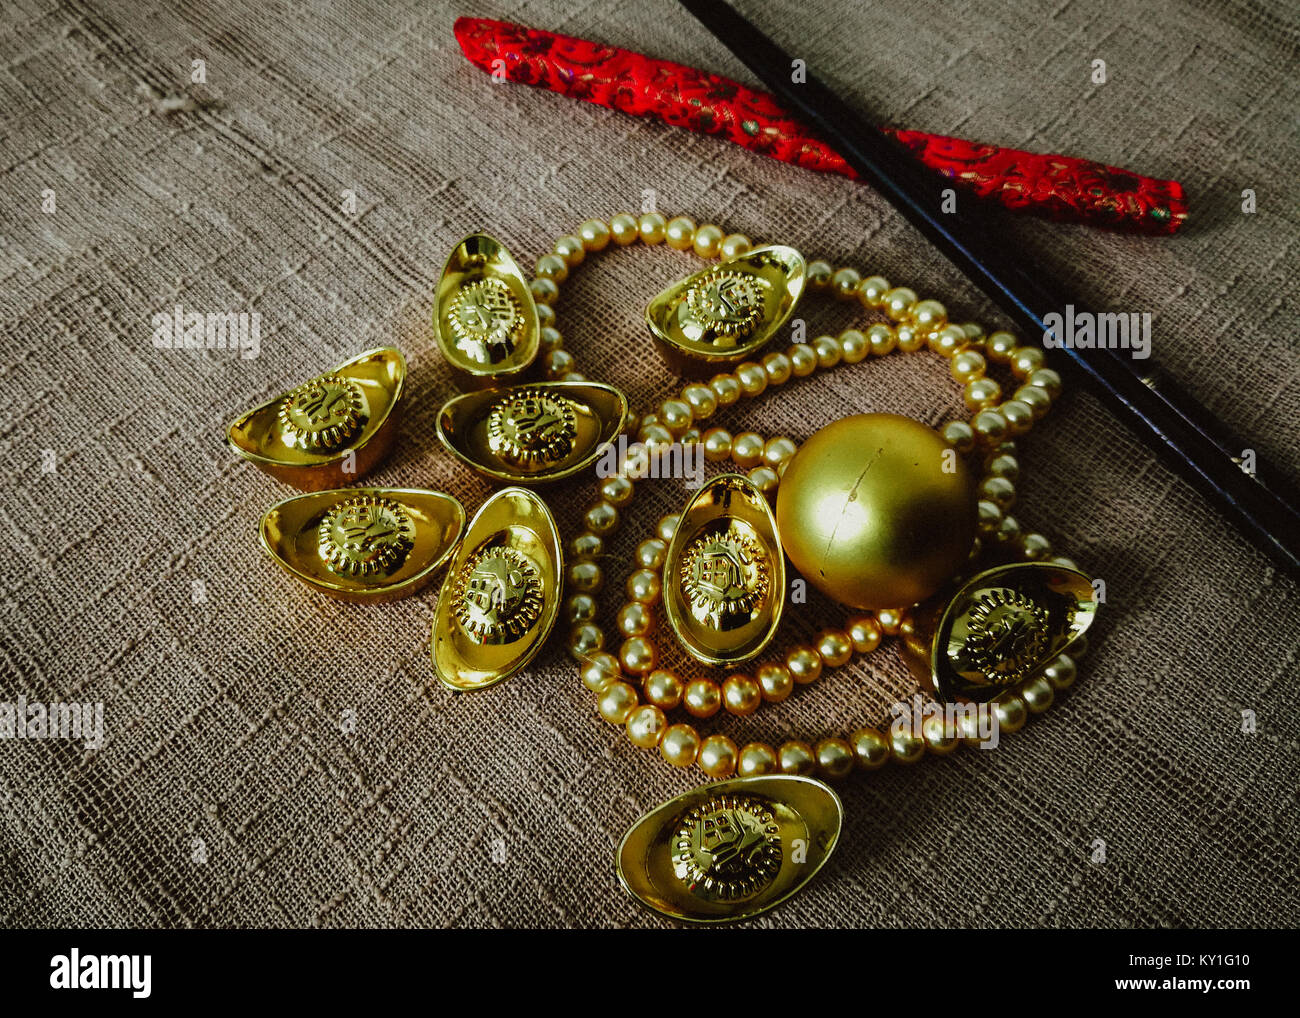 Chinese New Year celebration with decoration, gold ingots and golden pearls represent luxury and prosperity - Stock Image